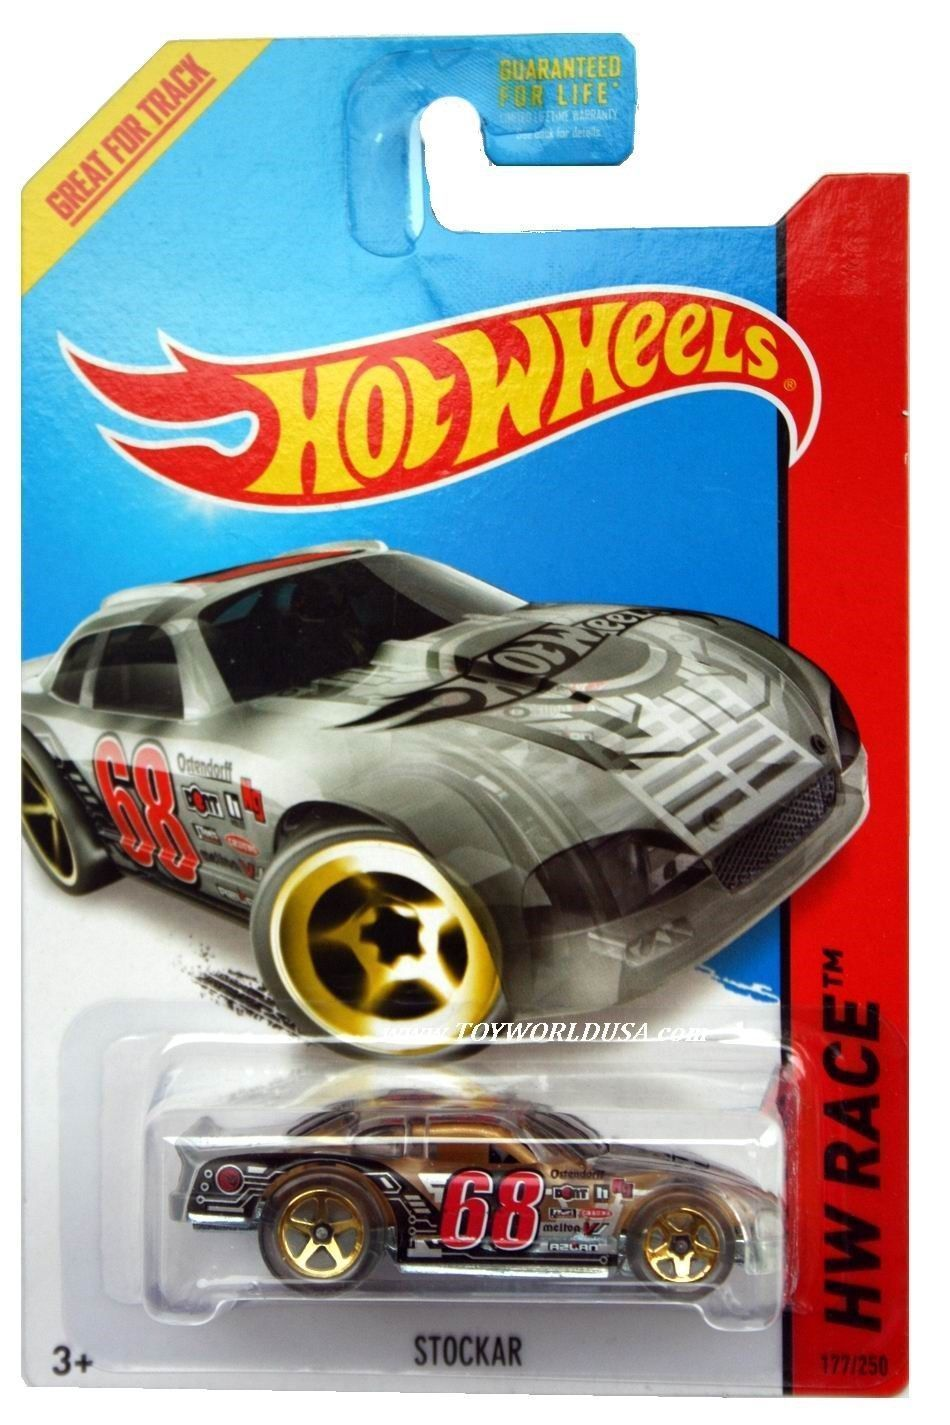 Primary image for 2014 Hot Wheels Car 68 HW Race X-Raycers Stockar Treasure Hunt #177 Clear Gold